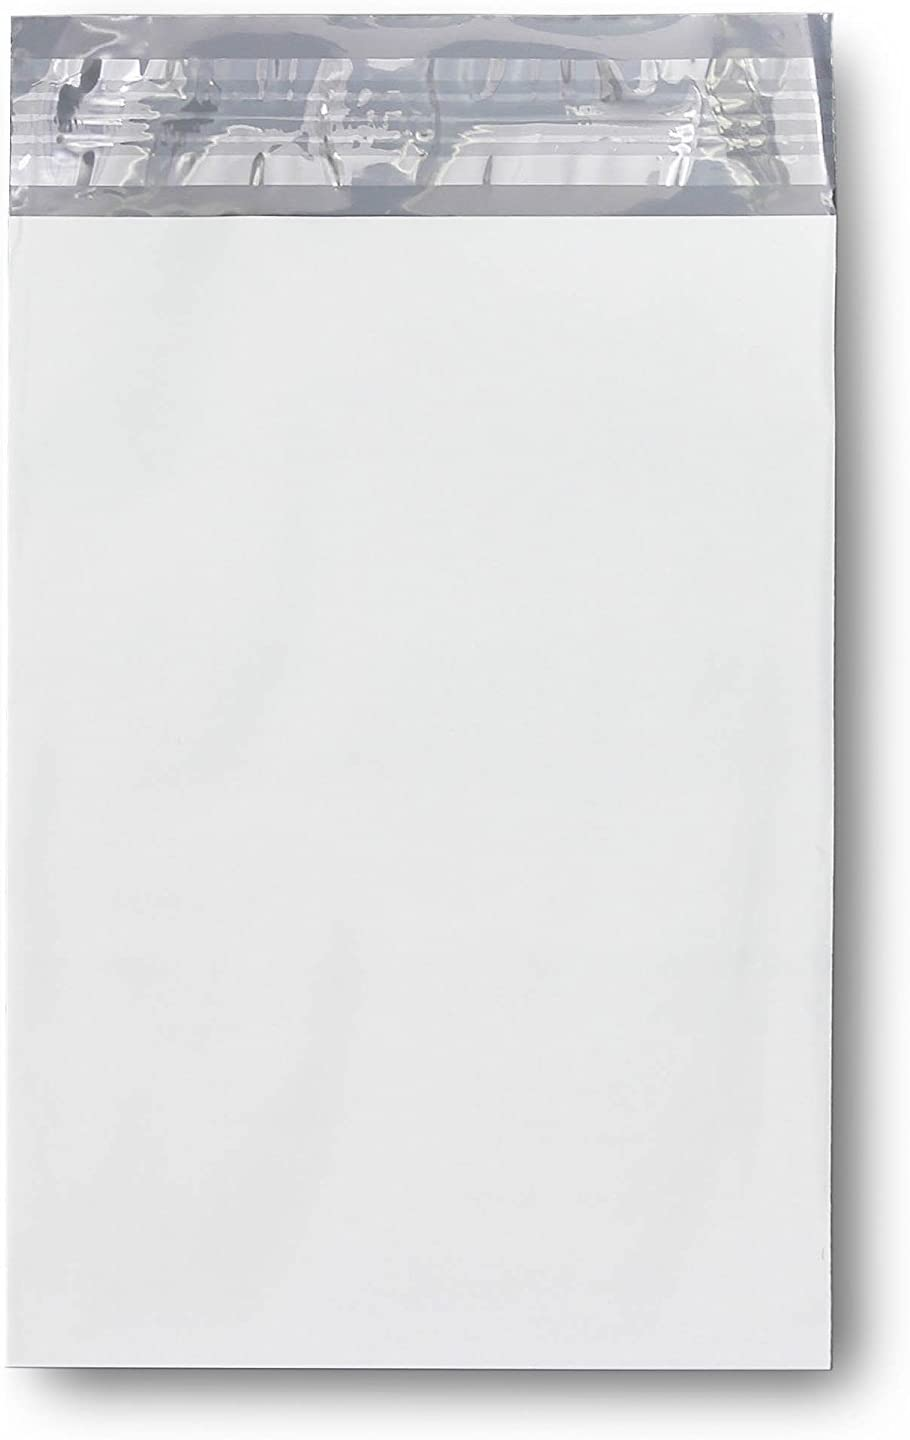 Pack of 50 White, 6 x 9 KKBESTPACK Poly Mailers Envelope Shipping Bags